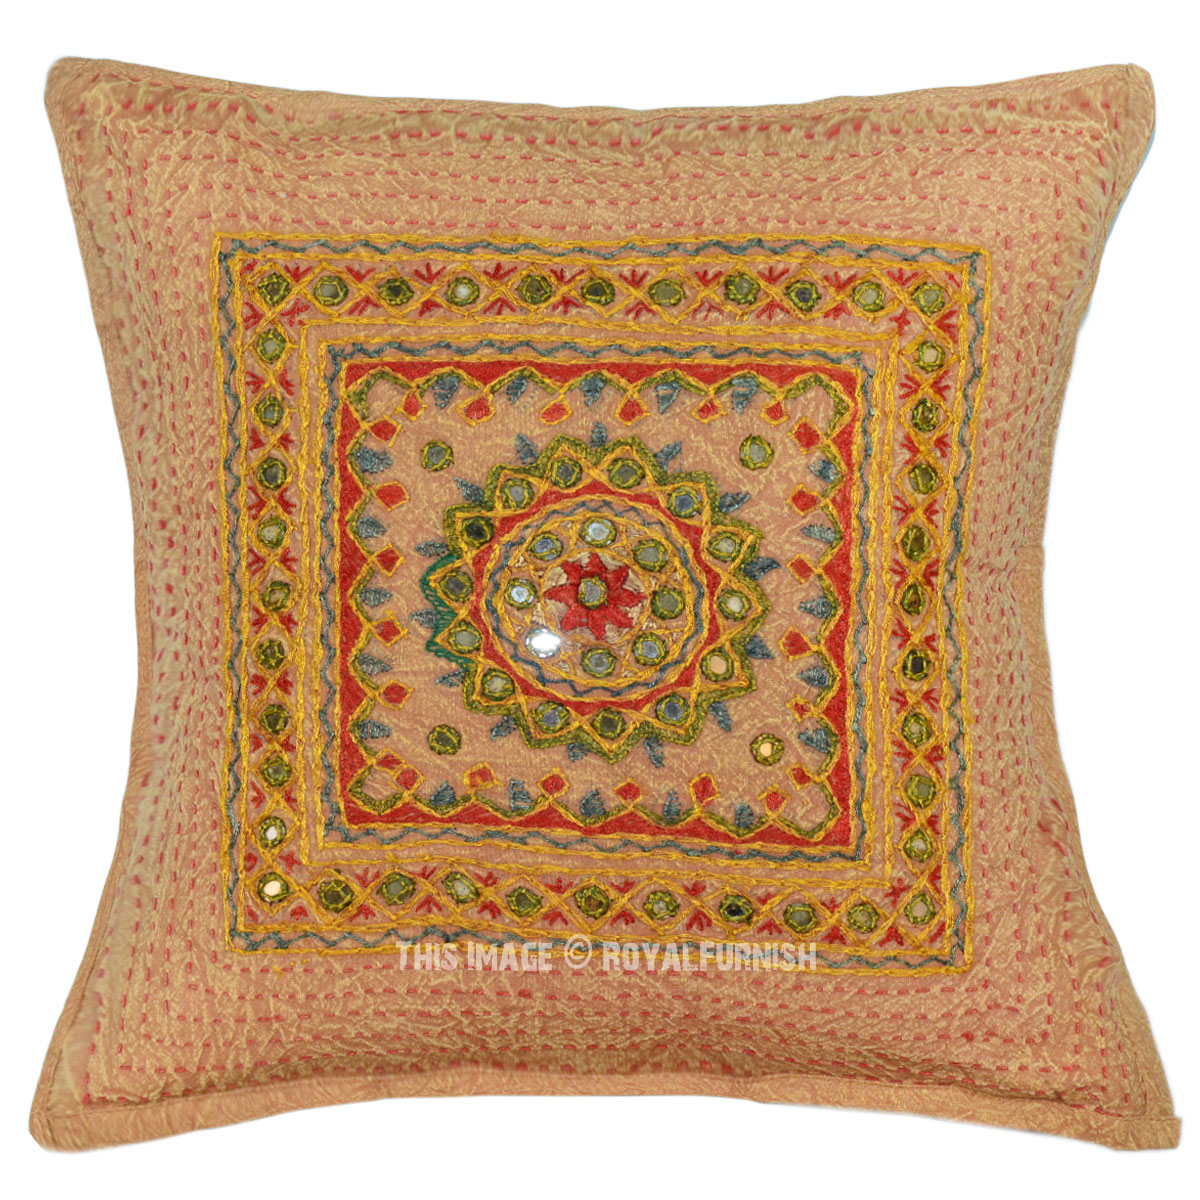 Brown outdoor indoor mirror medallion circle square throw pillow cover 16x16 - What is a throw pillow ...